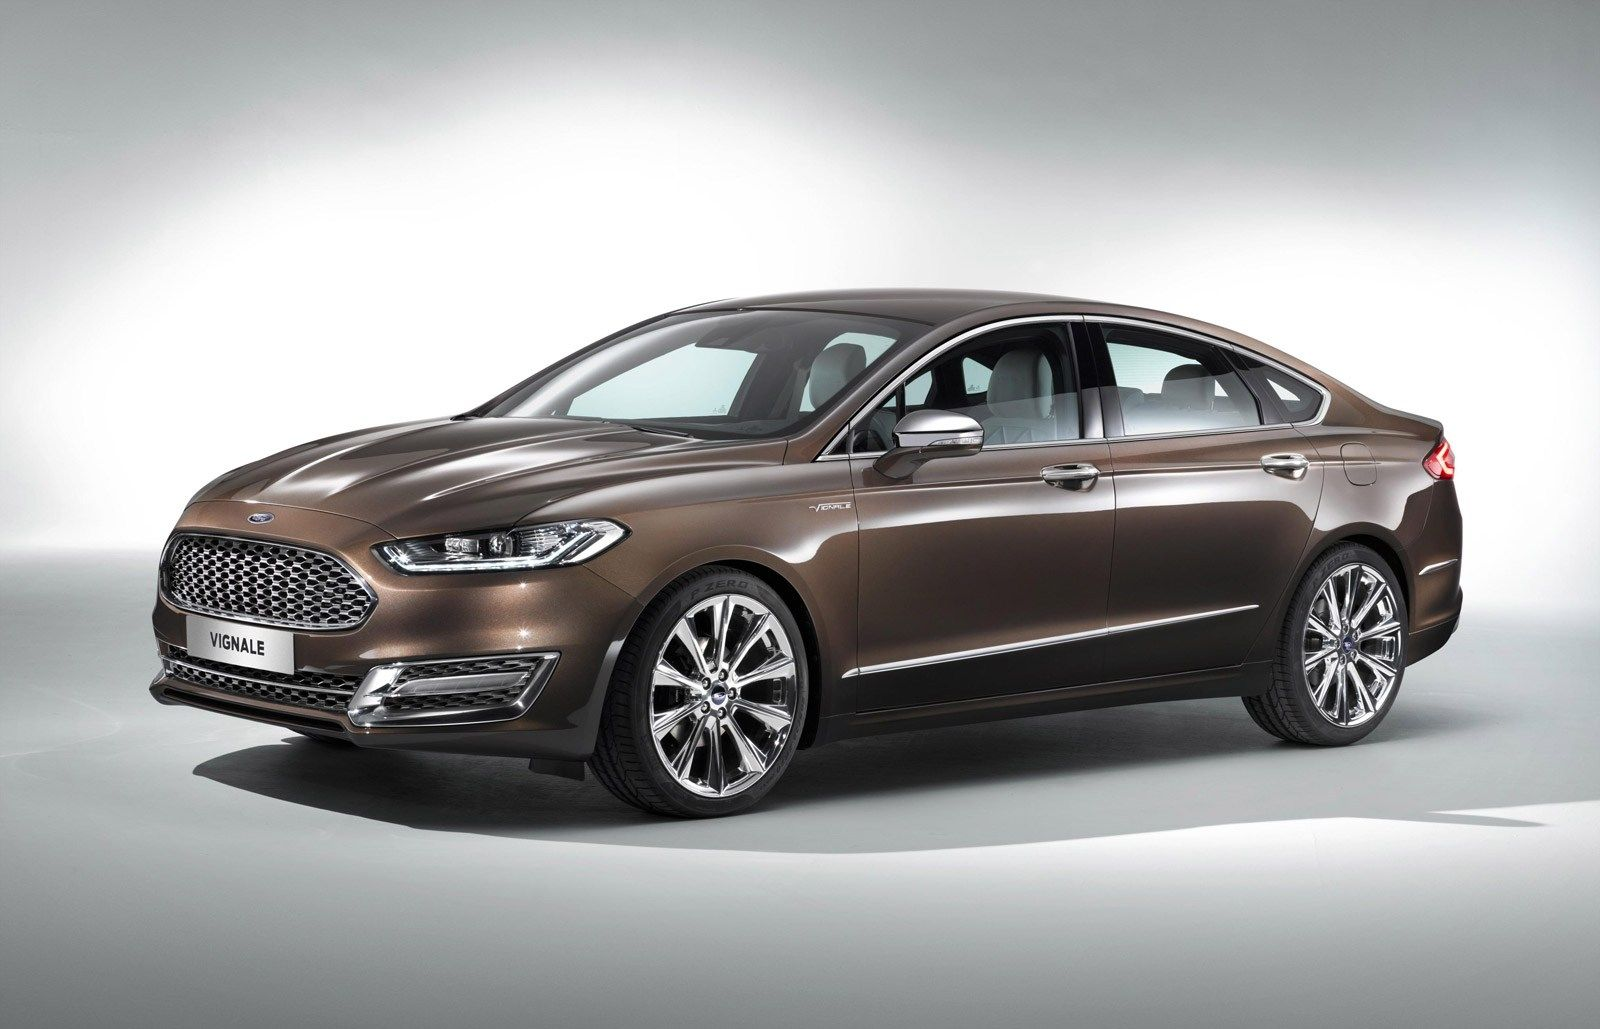 2020 Ford Mondeo Vignale New Release Ford Mondeo Ford Vignale